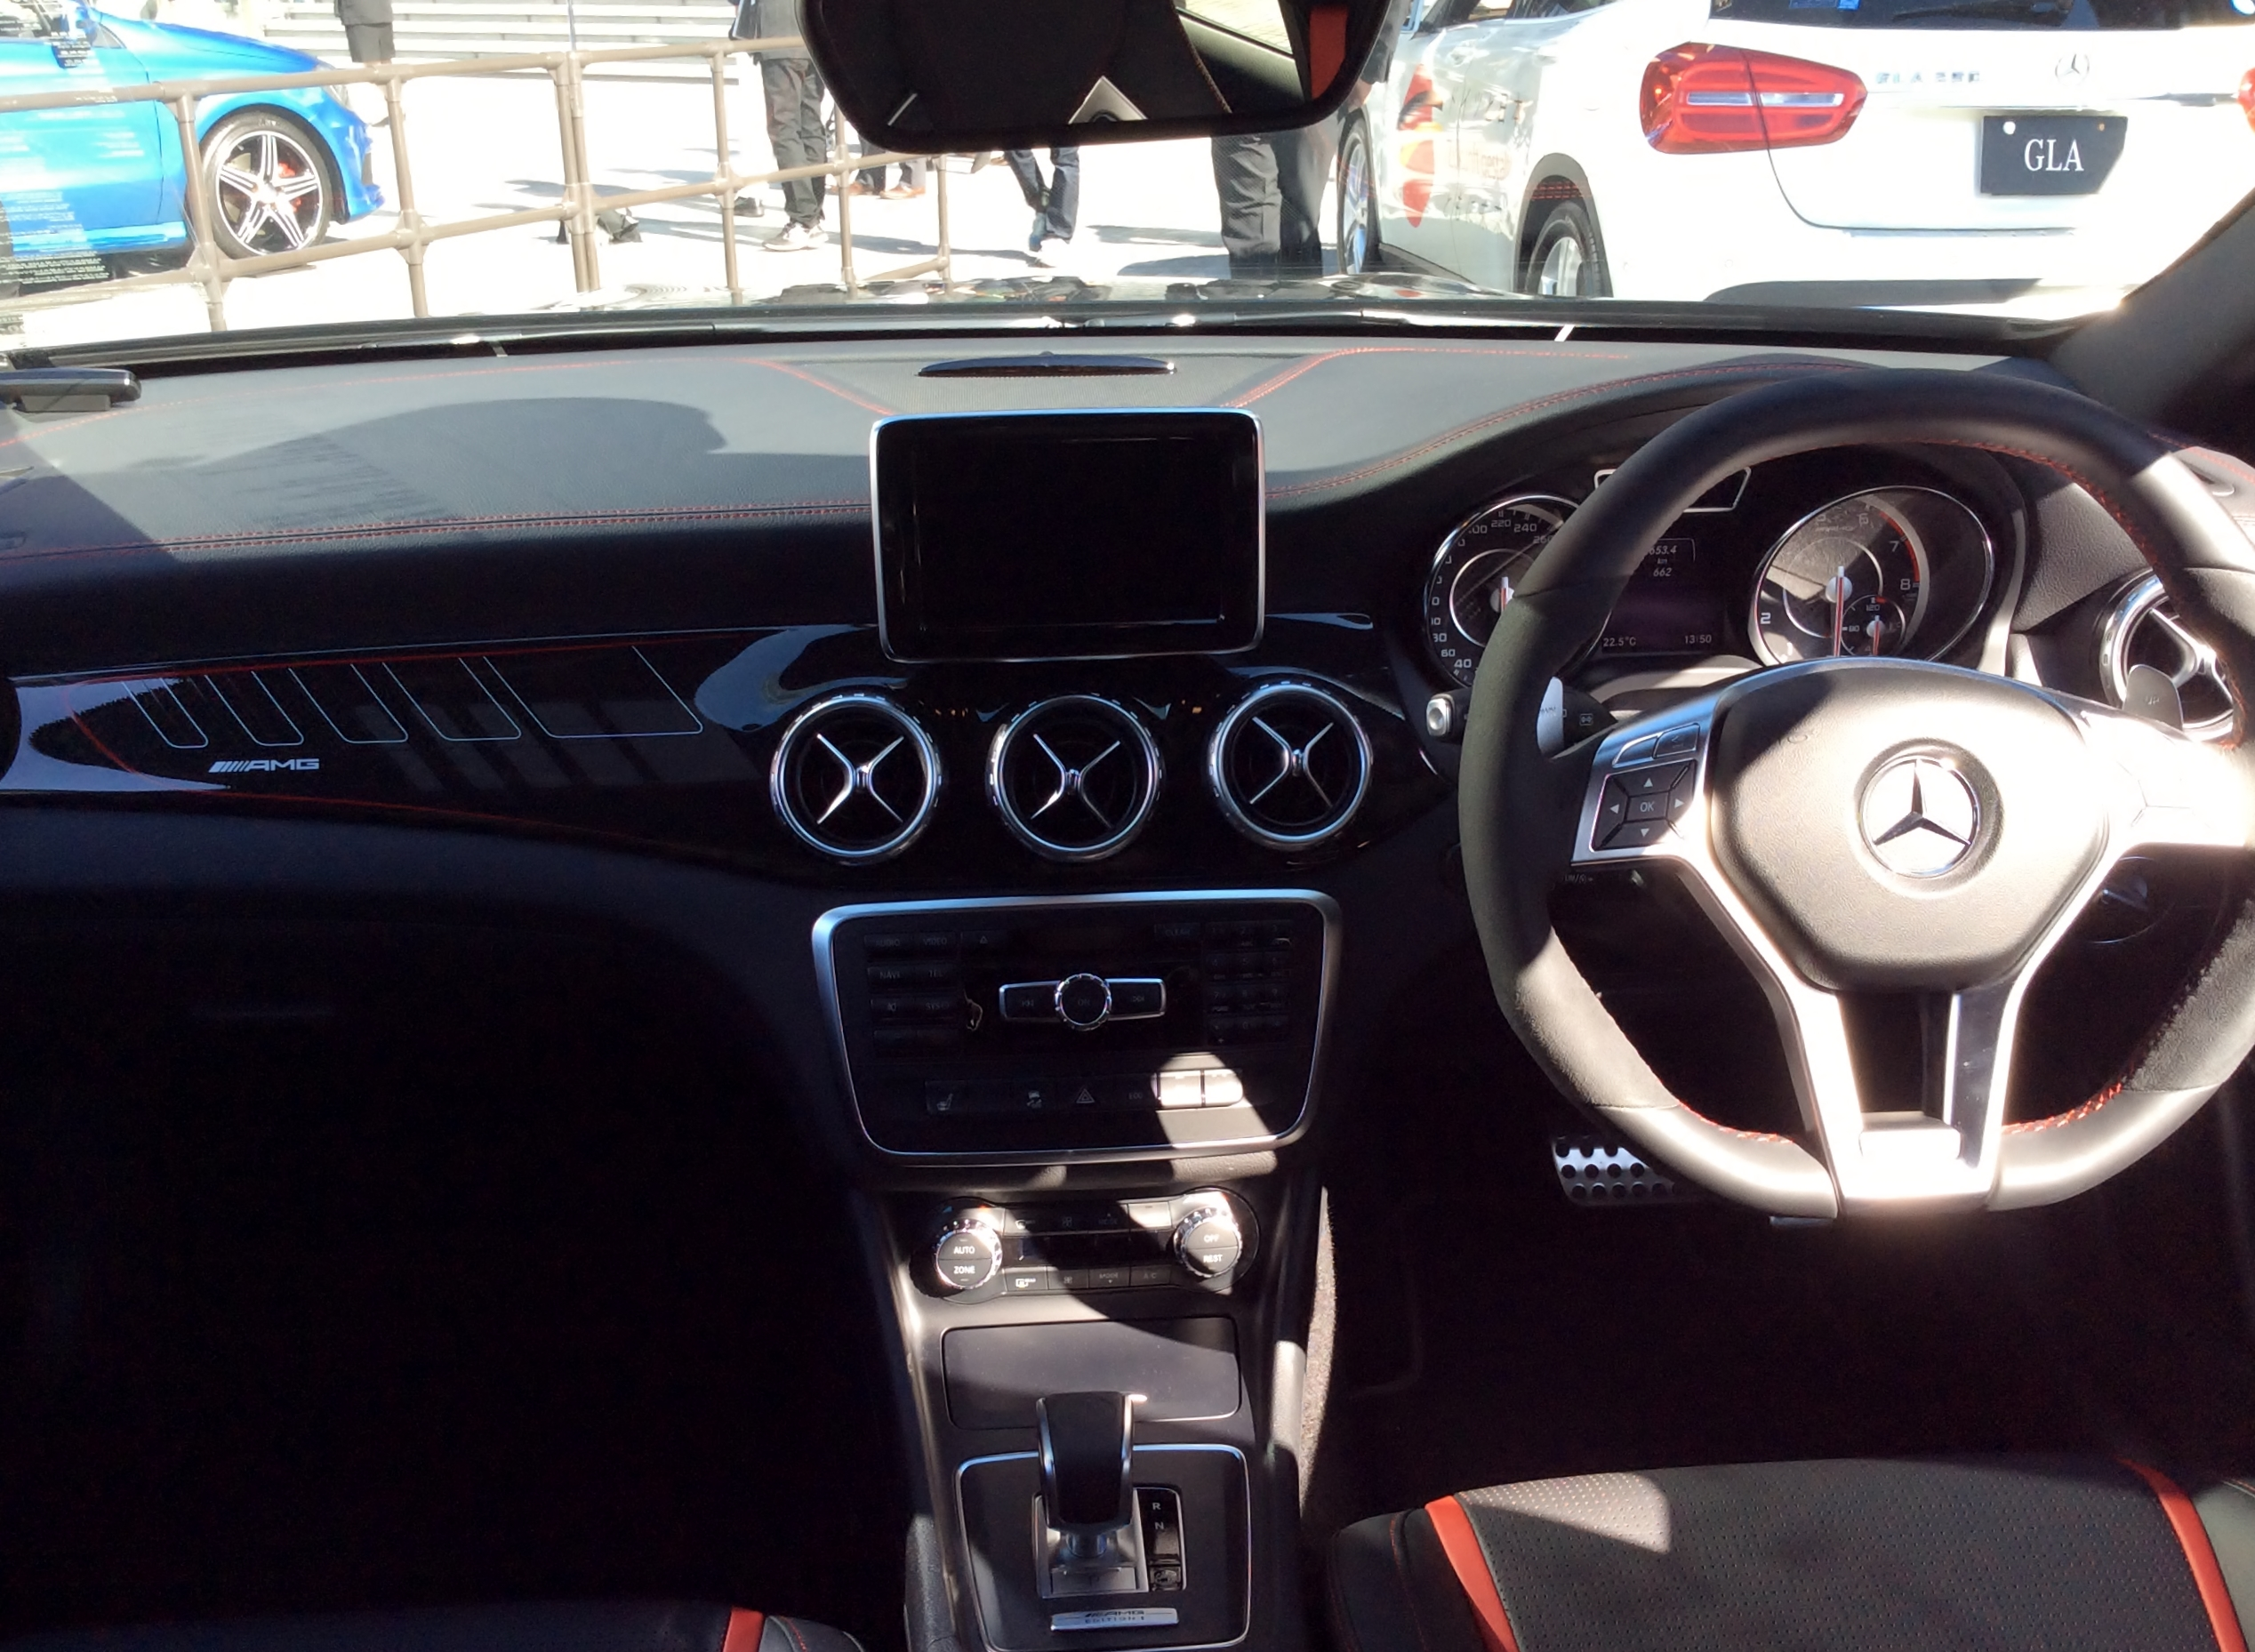 File:The interior of Mercedes-Benz GLA45 AMG 4MATIC ...